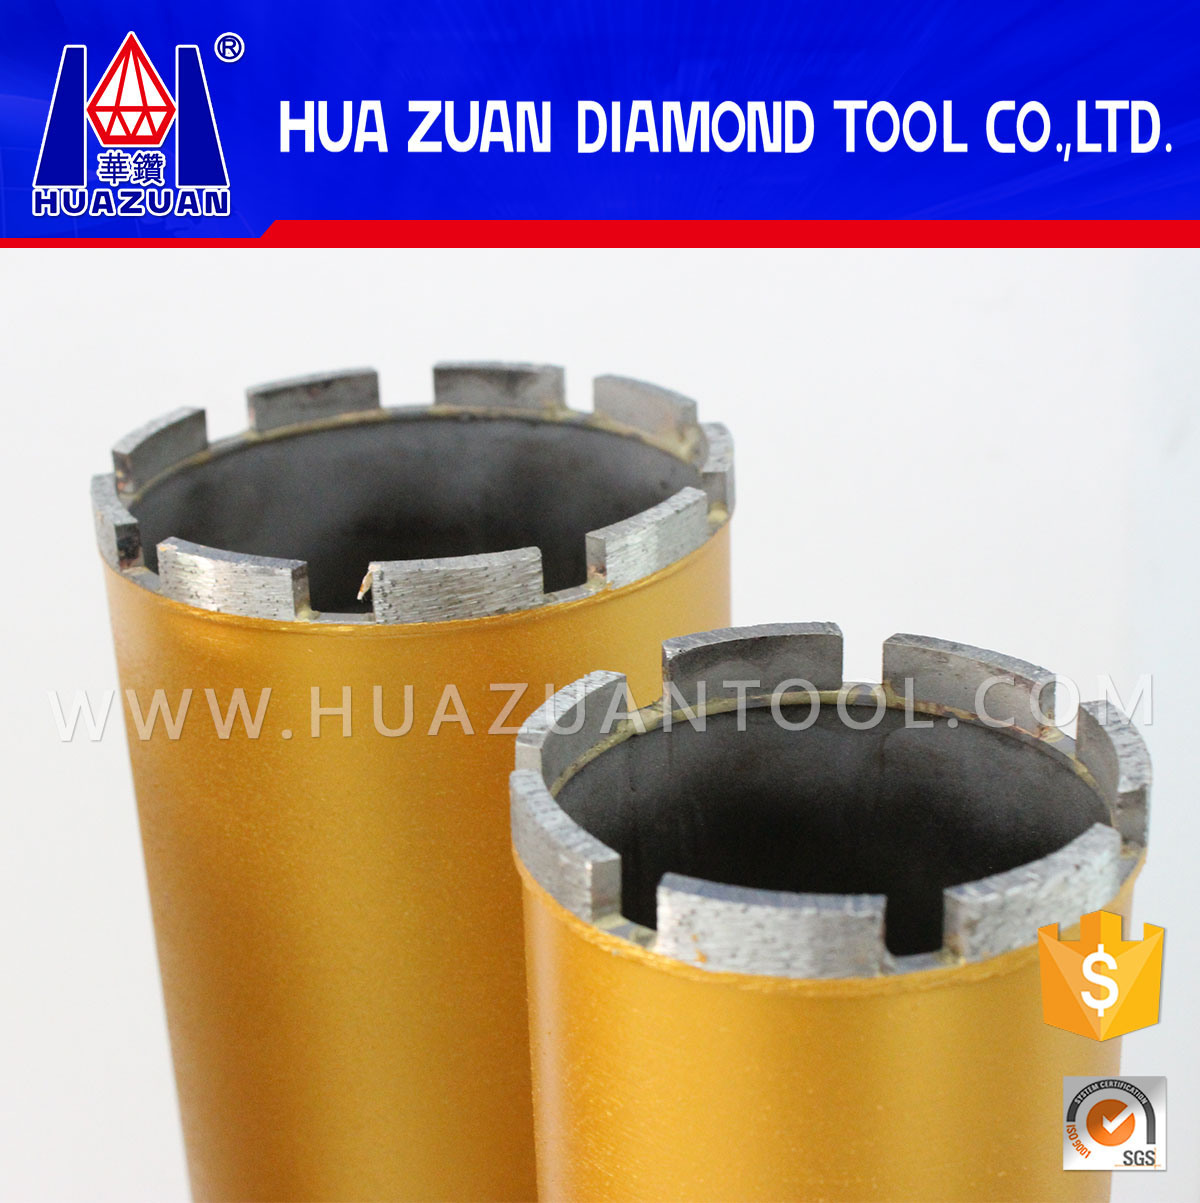 Length 450mm*1-1/4 Unit Diamond Crown for Reinforcement